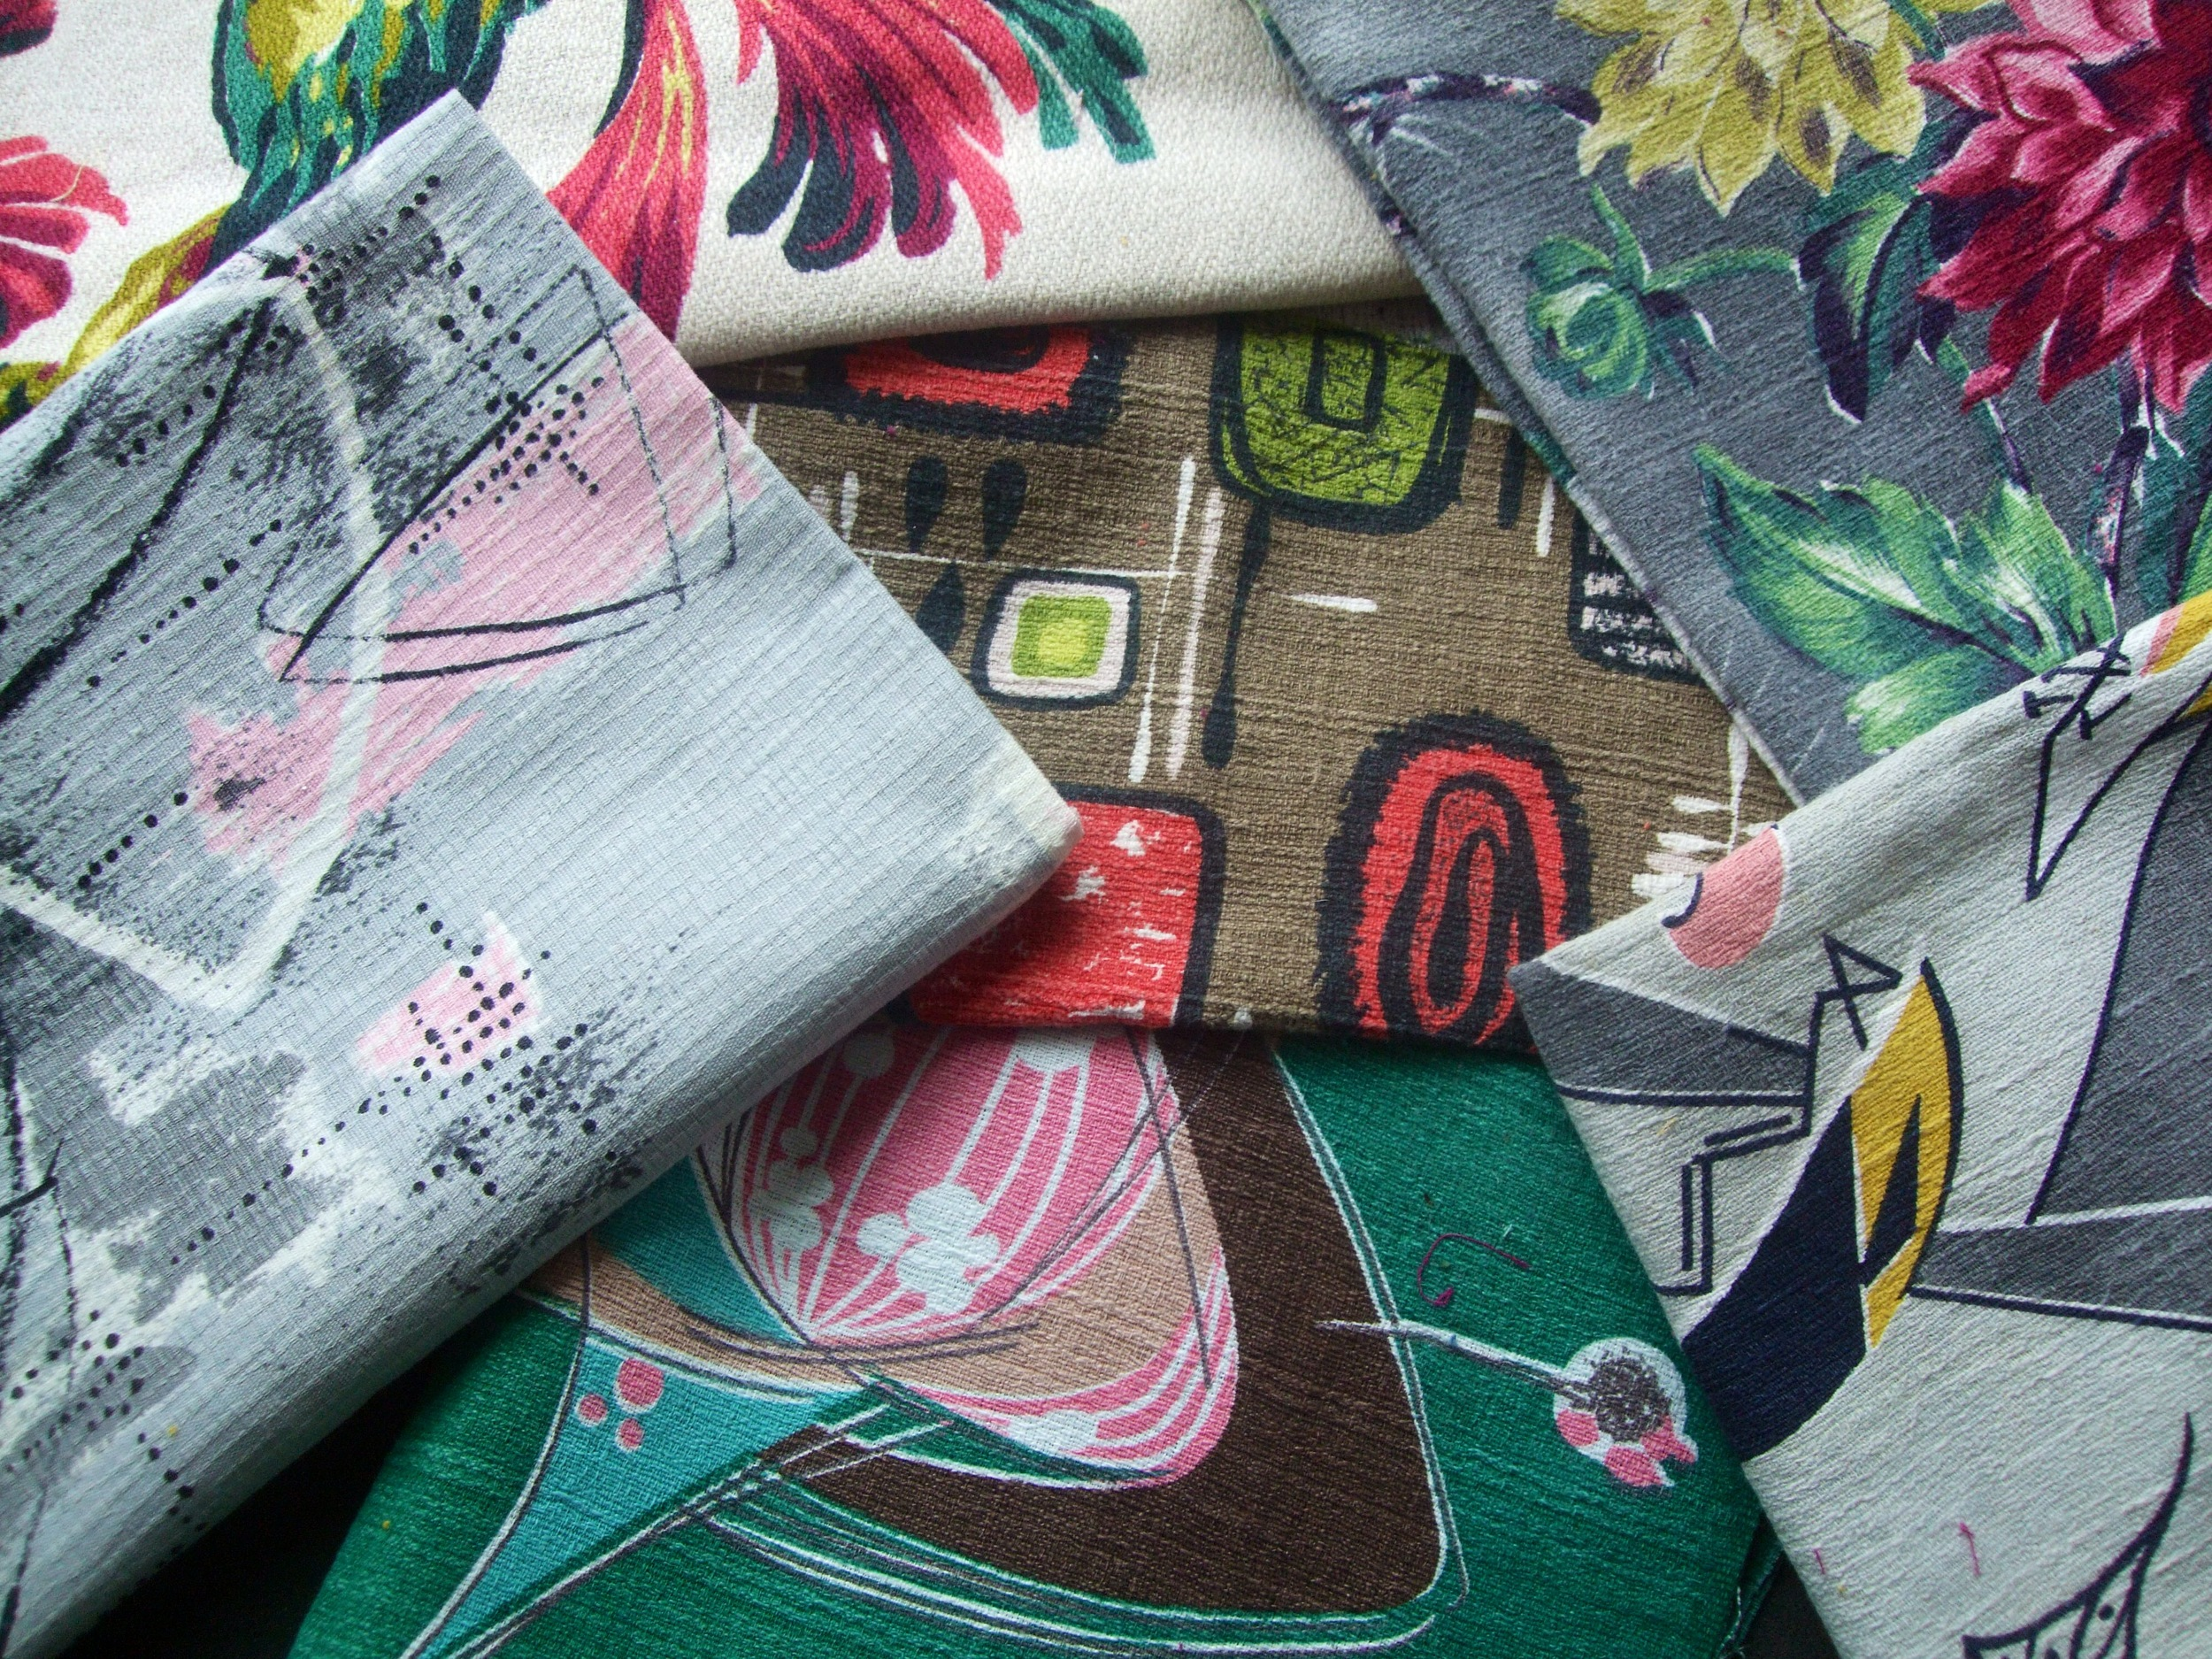 Examples of the many varieties of mid-century barkcloth in my collection. I am adding new fabrics continuously!